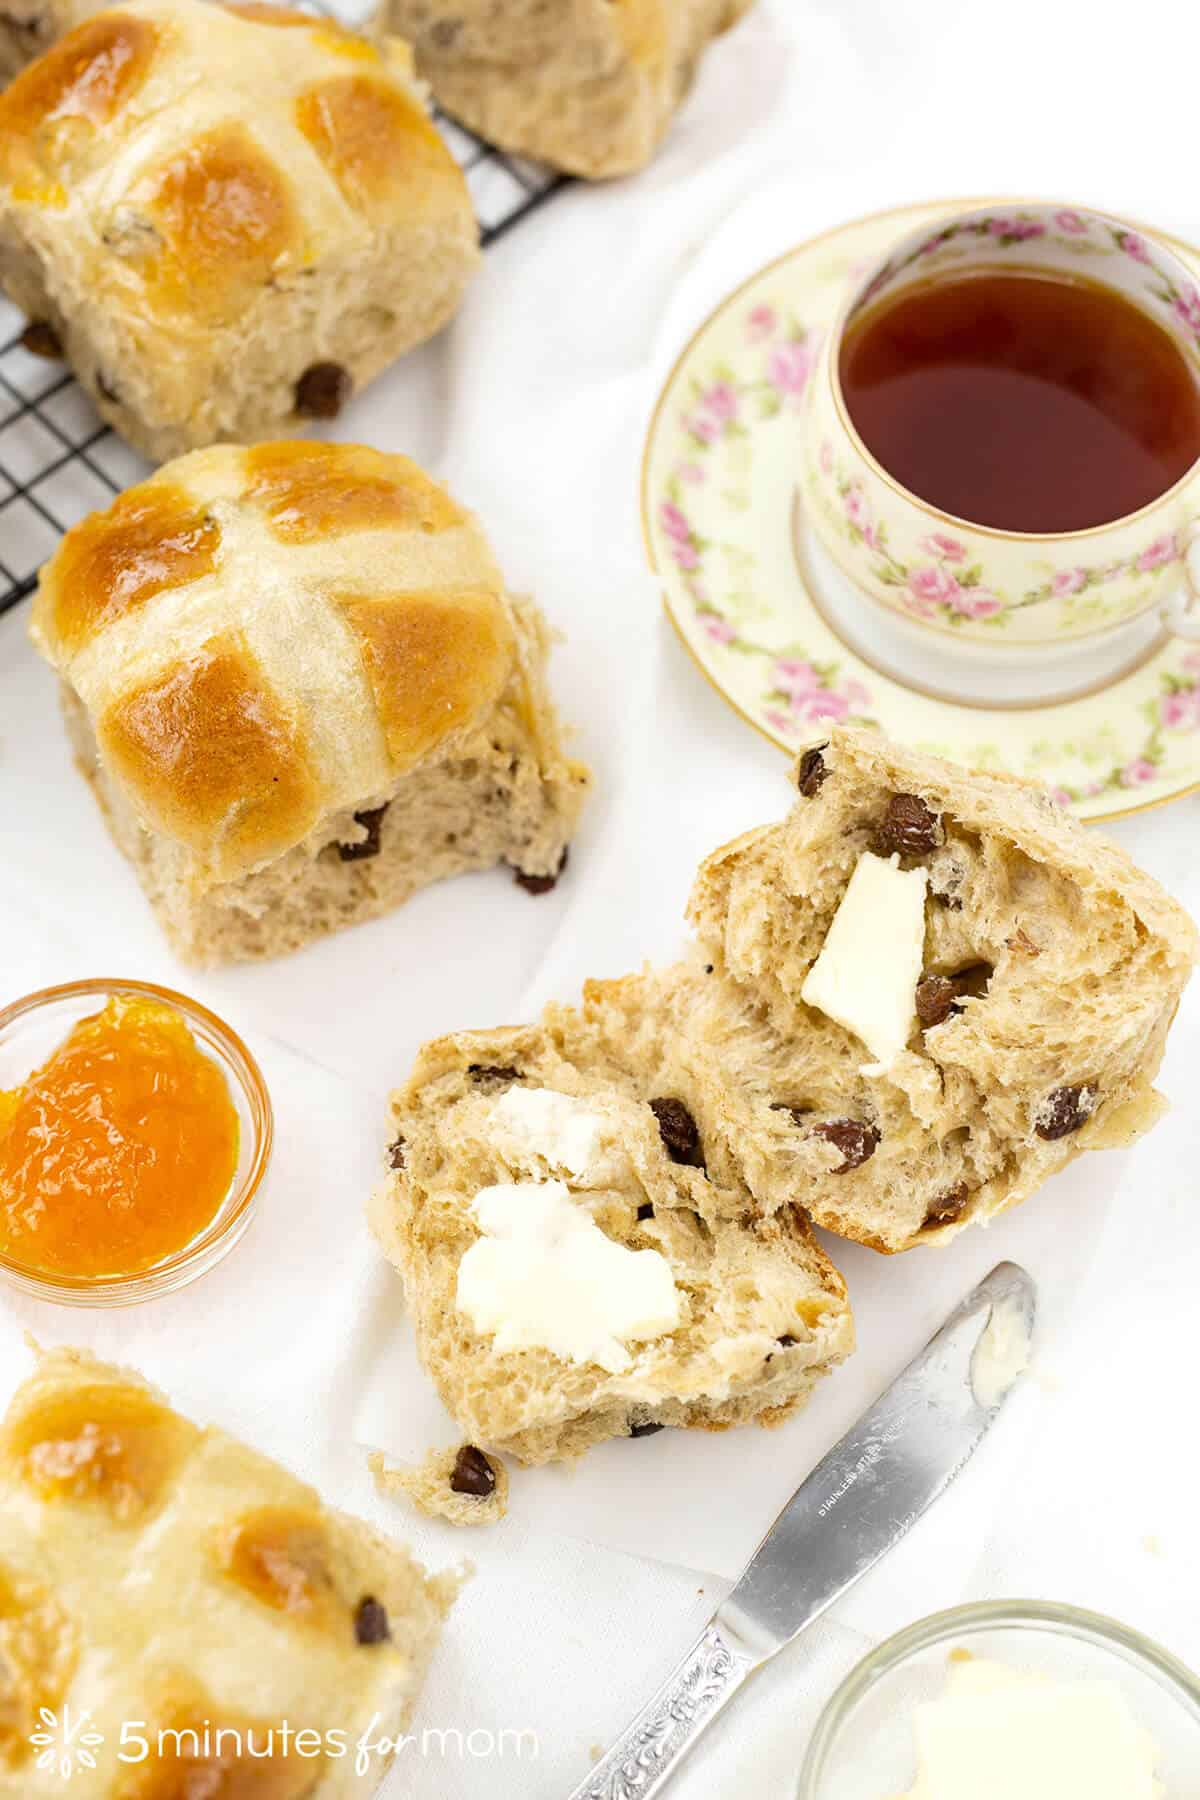 traditional hot cross buns served with butter and a cup of tea